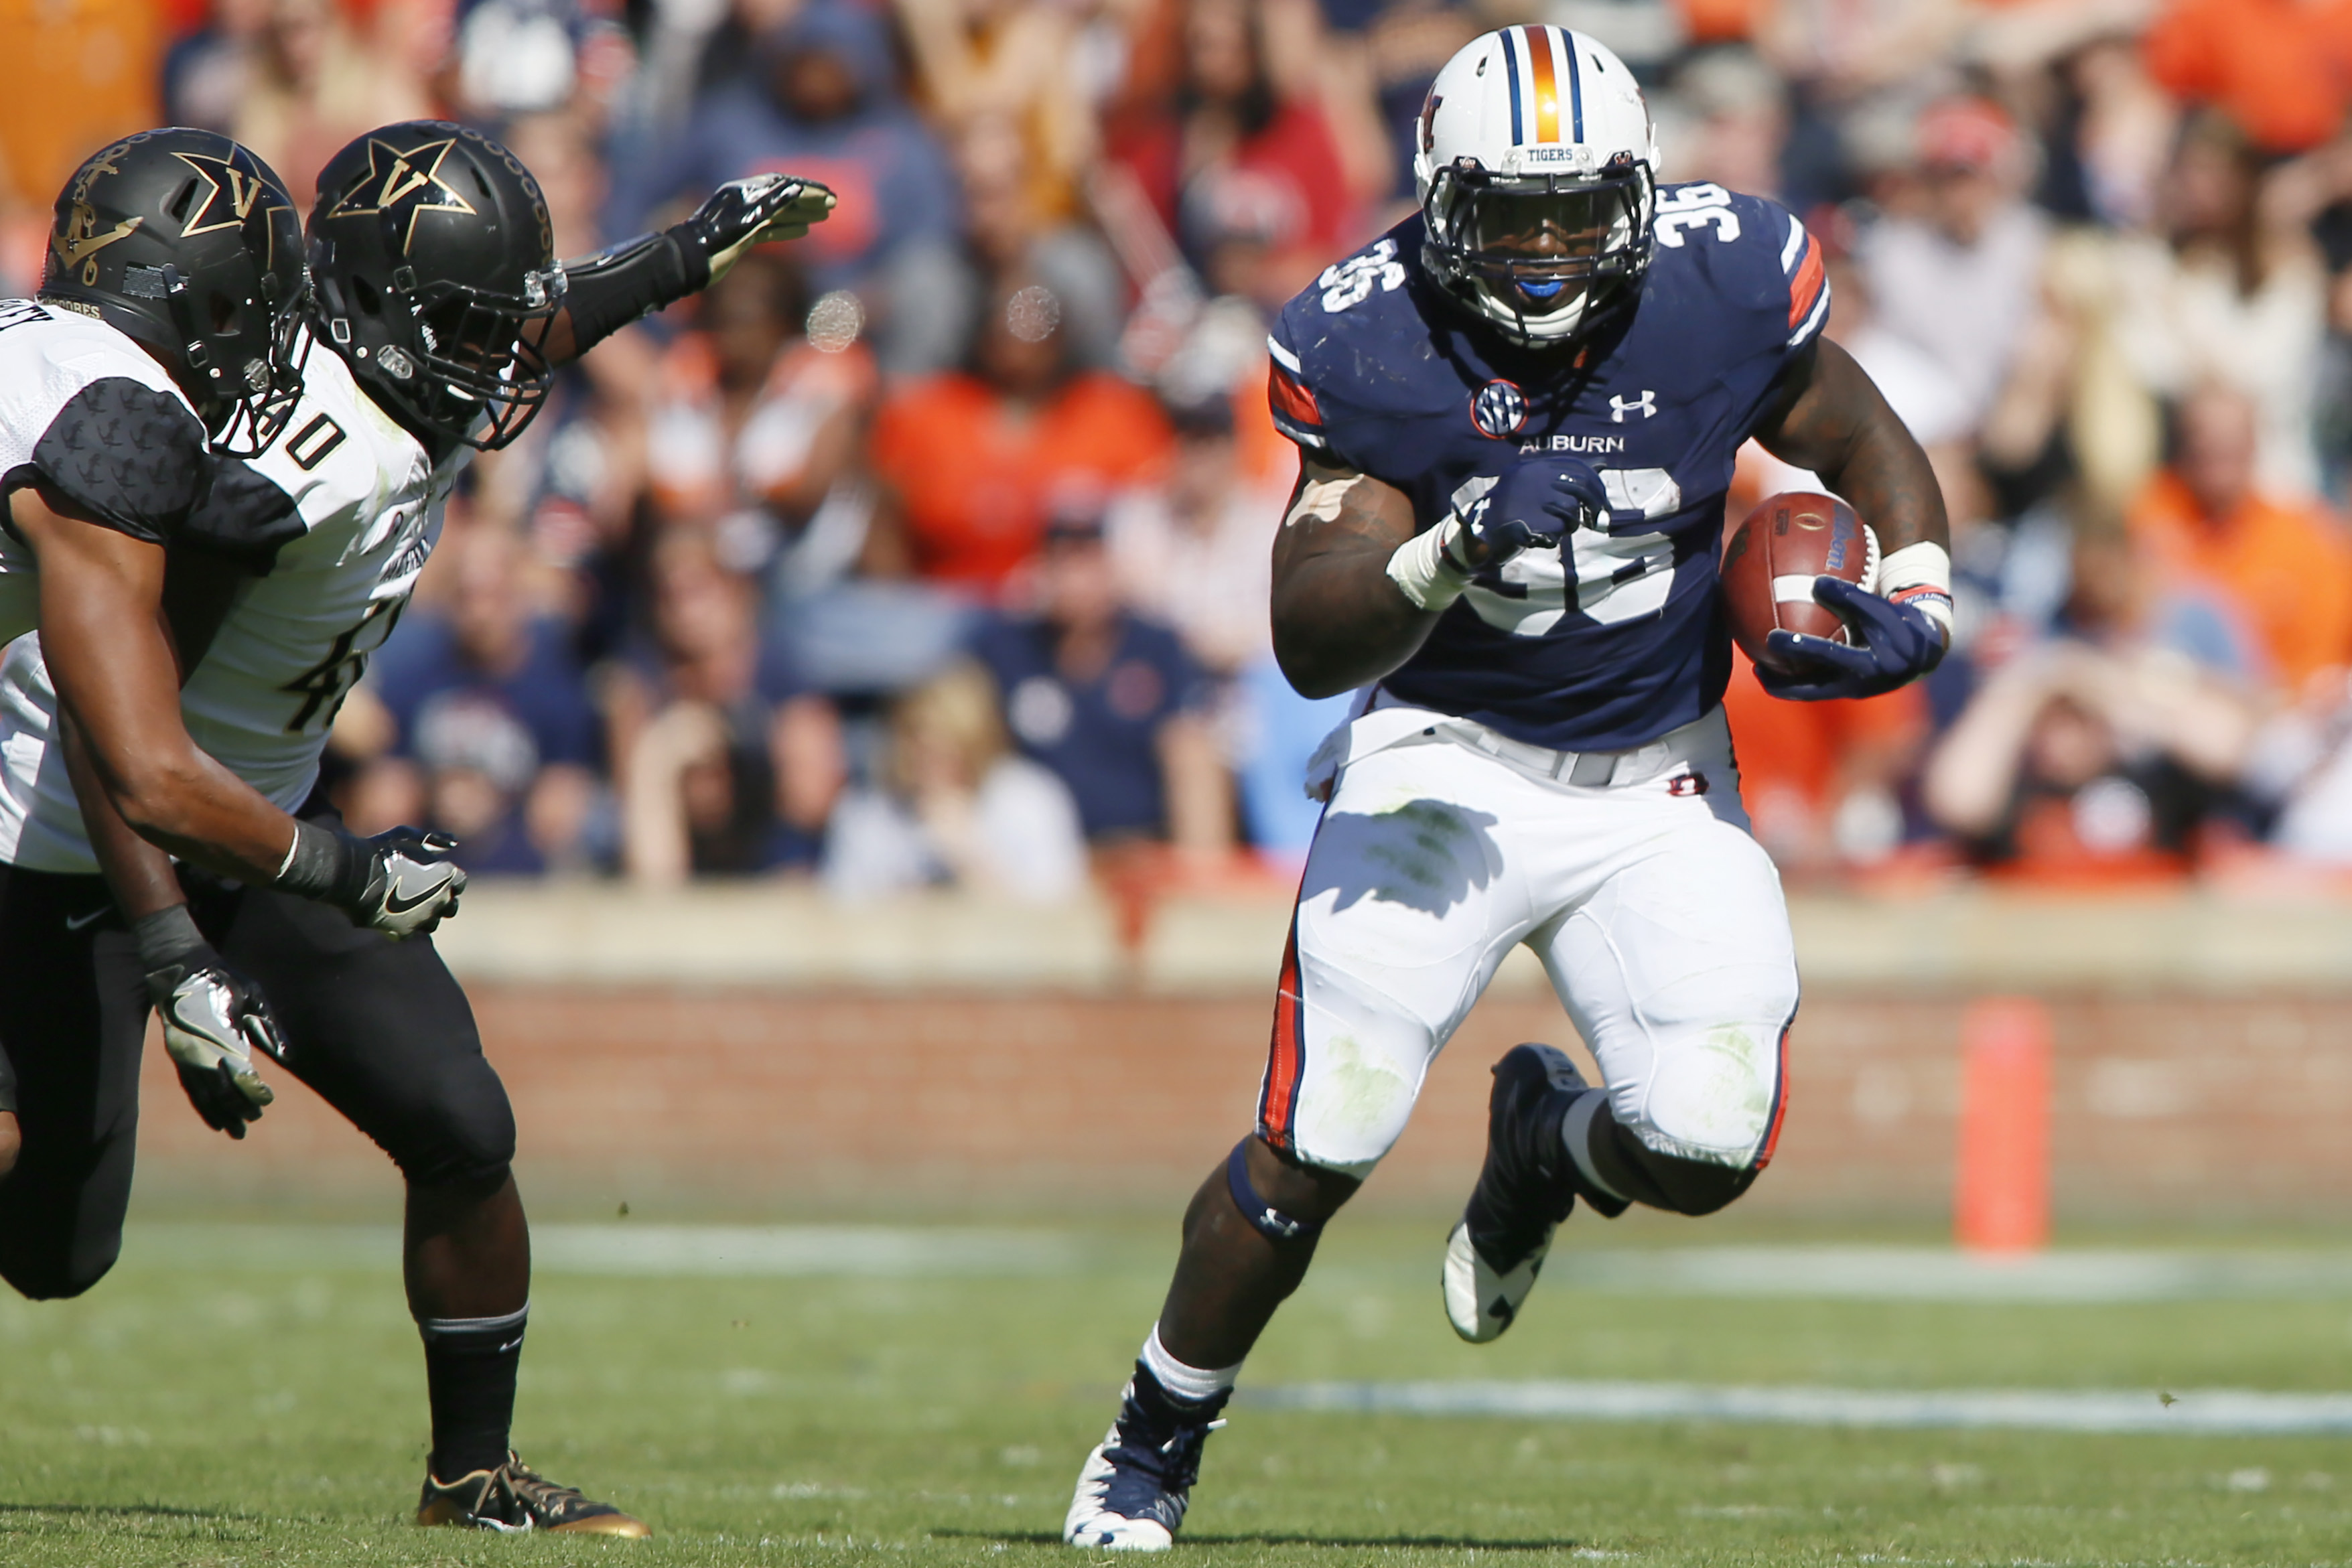 Nov 5, 2016; Auburn, AL, USA; Auburn Tigers running back Kamryn Pettway (36) carries against the Vanderbilt Commodores during the third quarter at Jordan Hare Stadium. The Tigers beat the Commodores 23-16. Mandatory Credit: John Reed-USA TODAY Sports